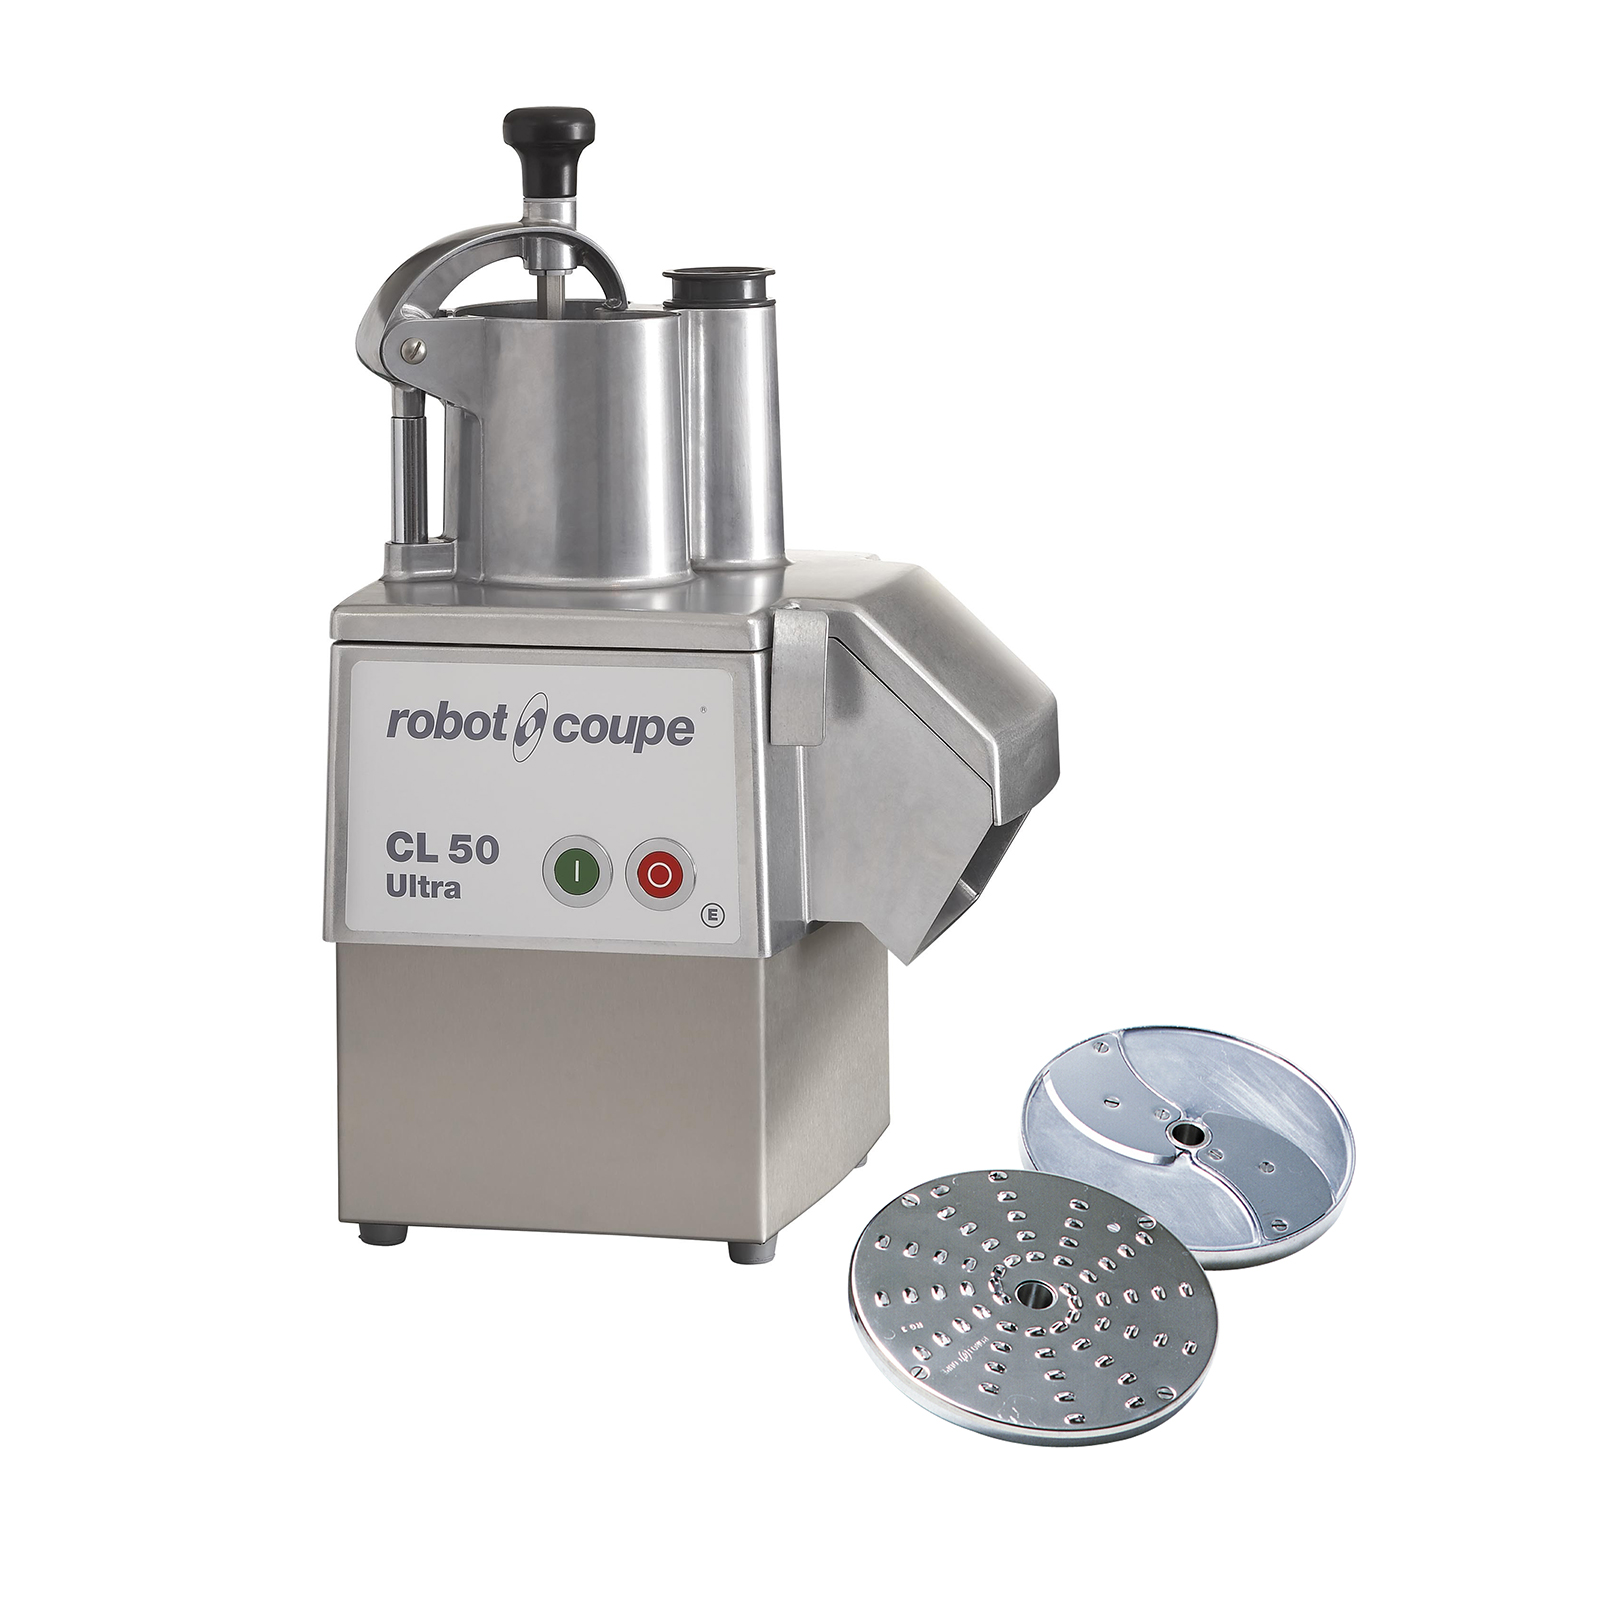 Robot Coupe CL50 ULTRA food processor, benchtop / countertop